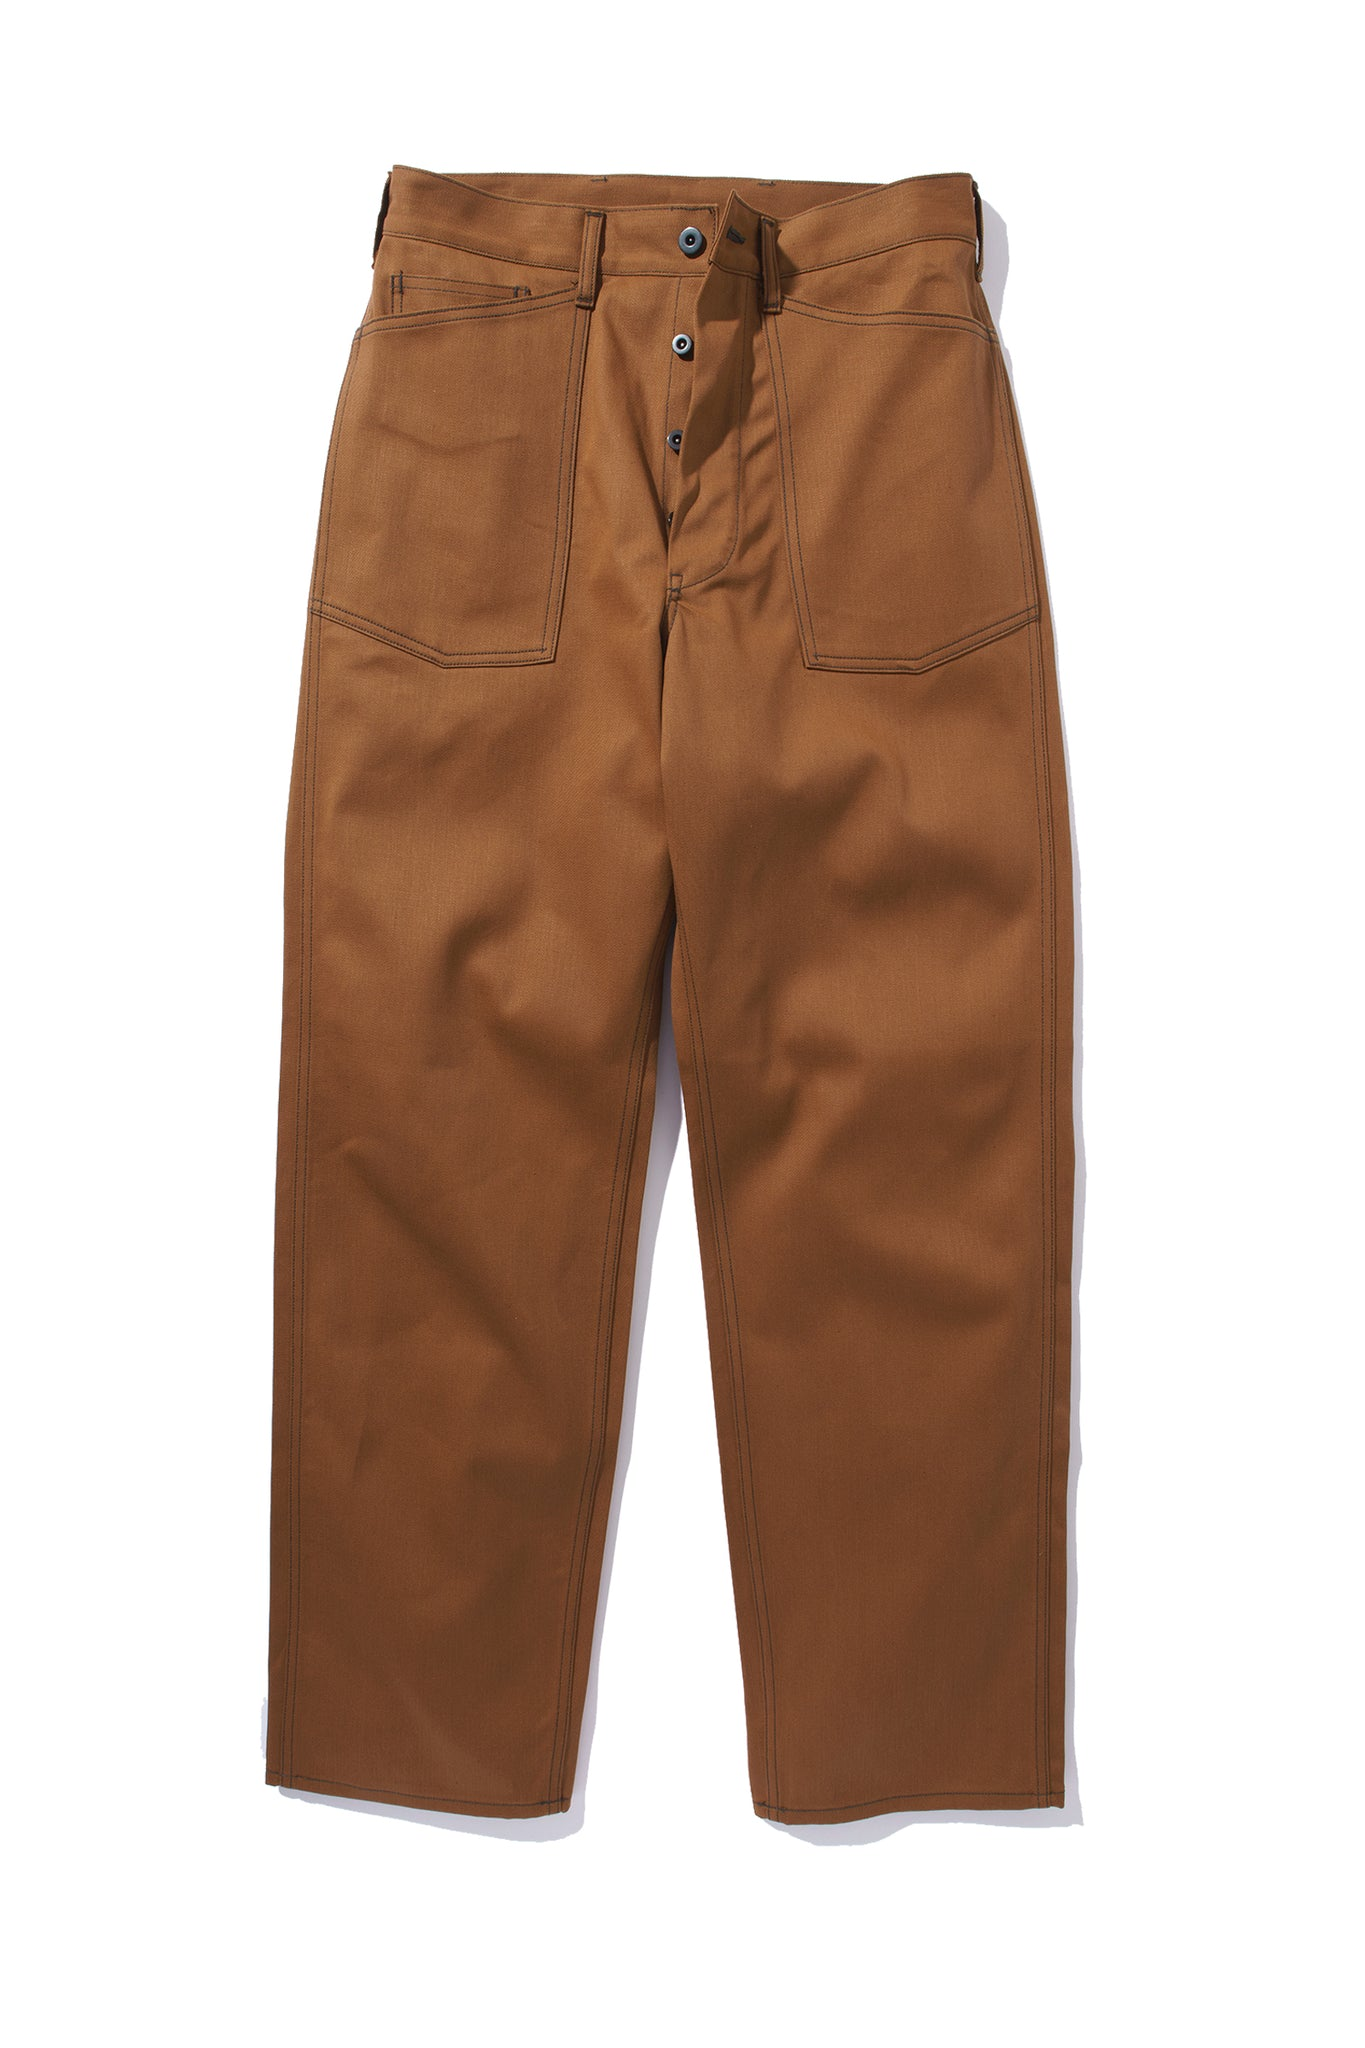 WW1 BROWN FATIGUE TROUSERS